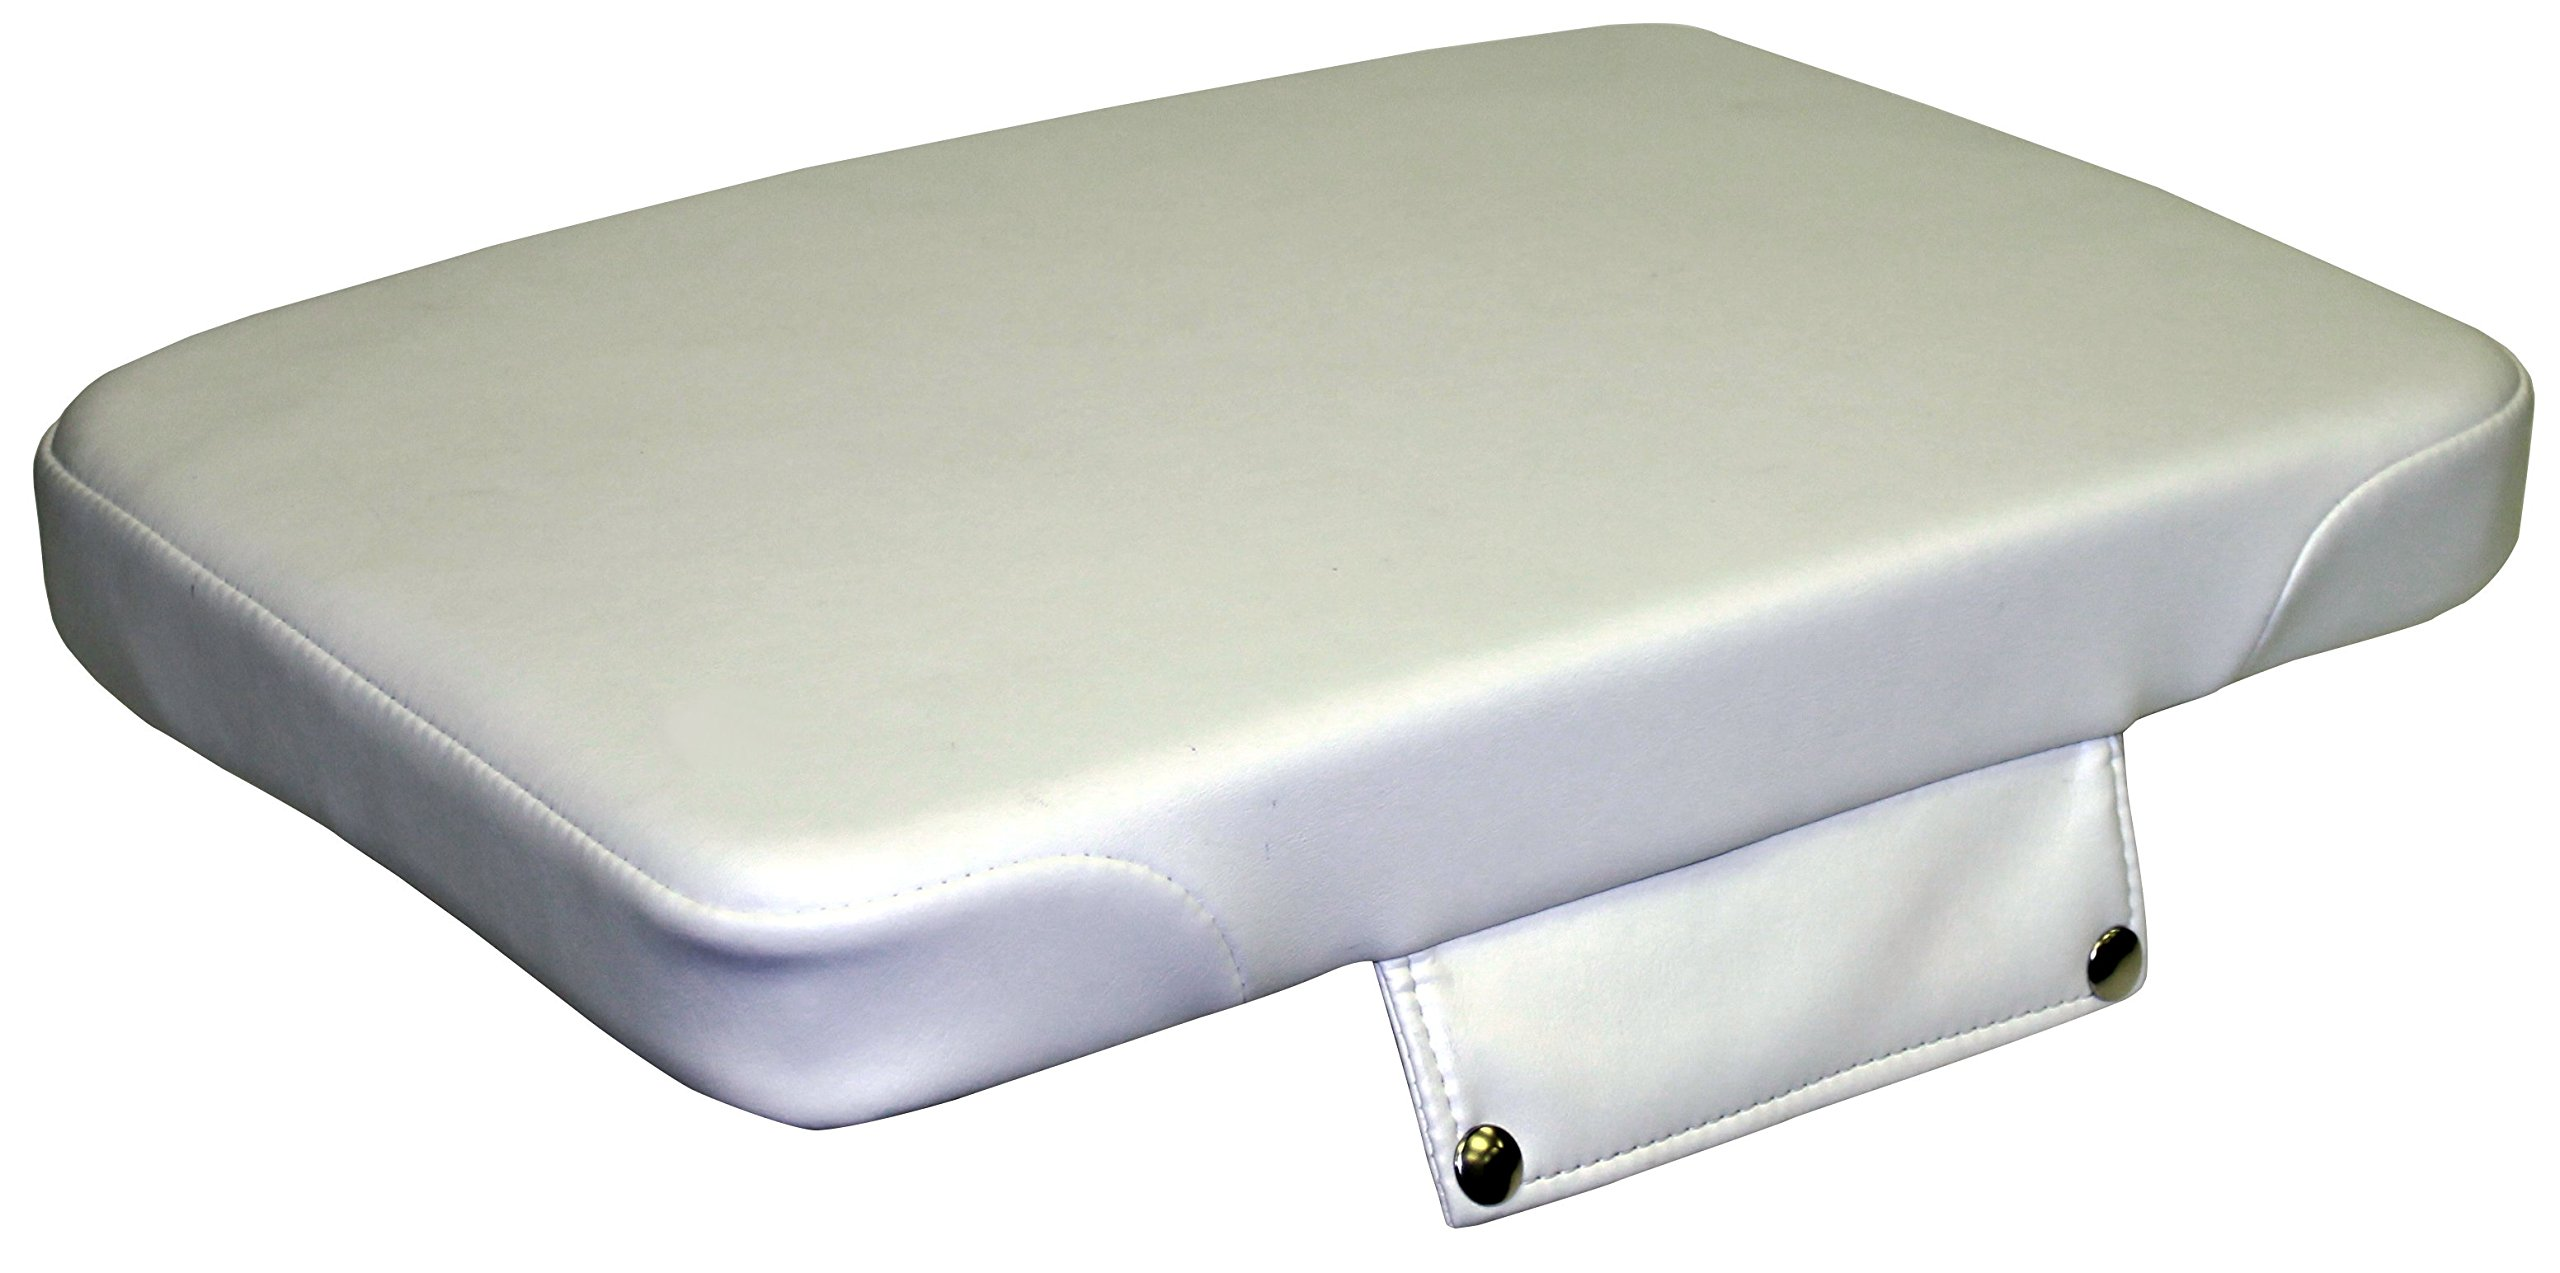 Wise Outdoors 8WD1502-784 Cooler Cushion 20 Qt, White